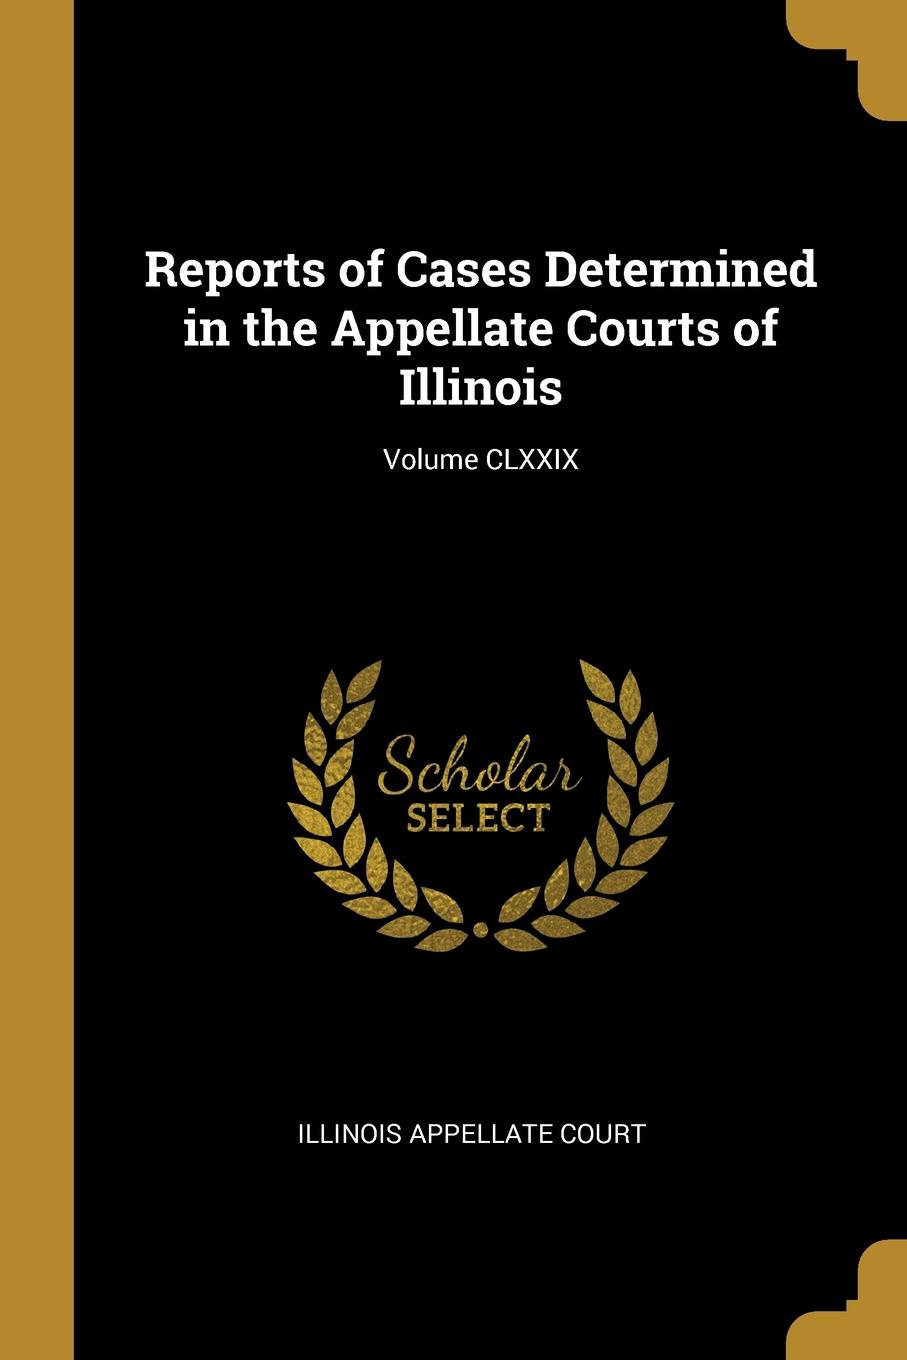 Illinois Appellate Court Reports of Cases Determined in the Appellate Courts of Illinois; Volume CLXXIX